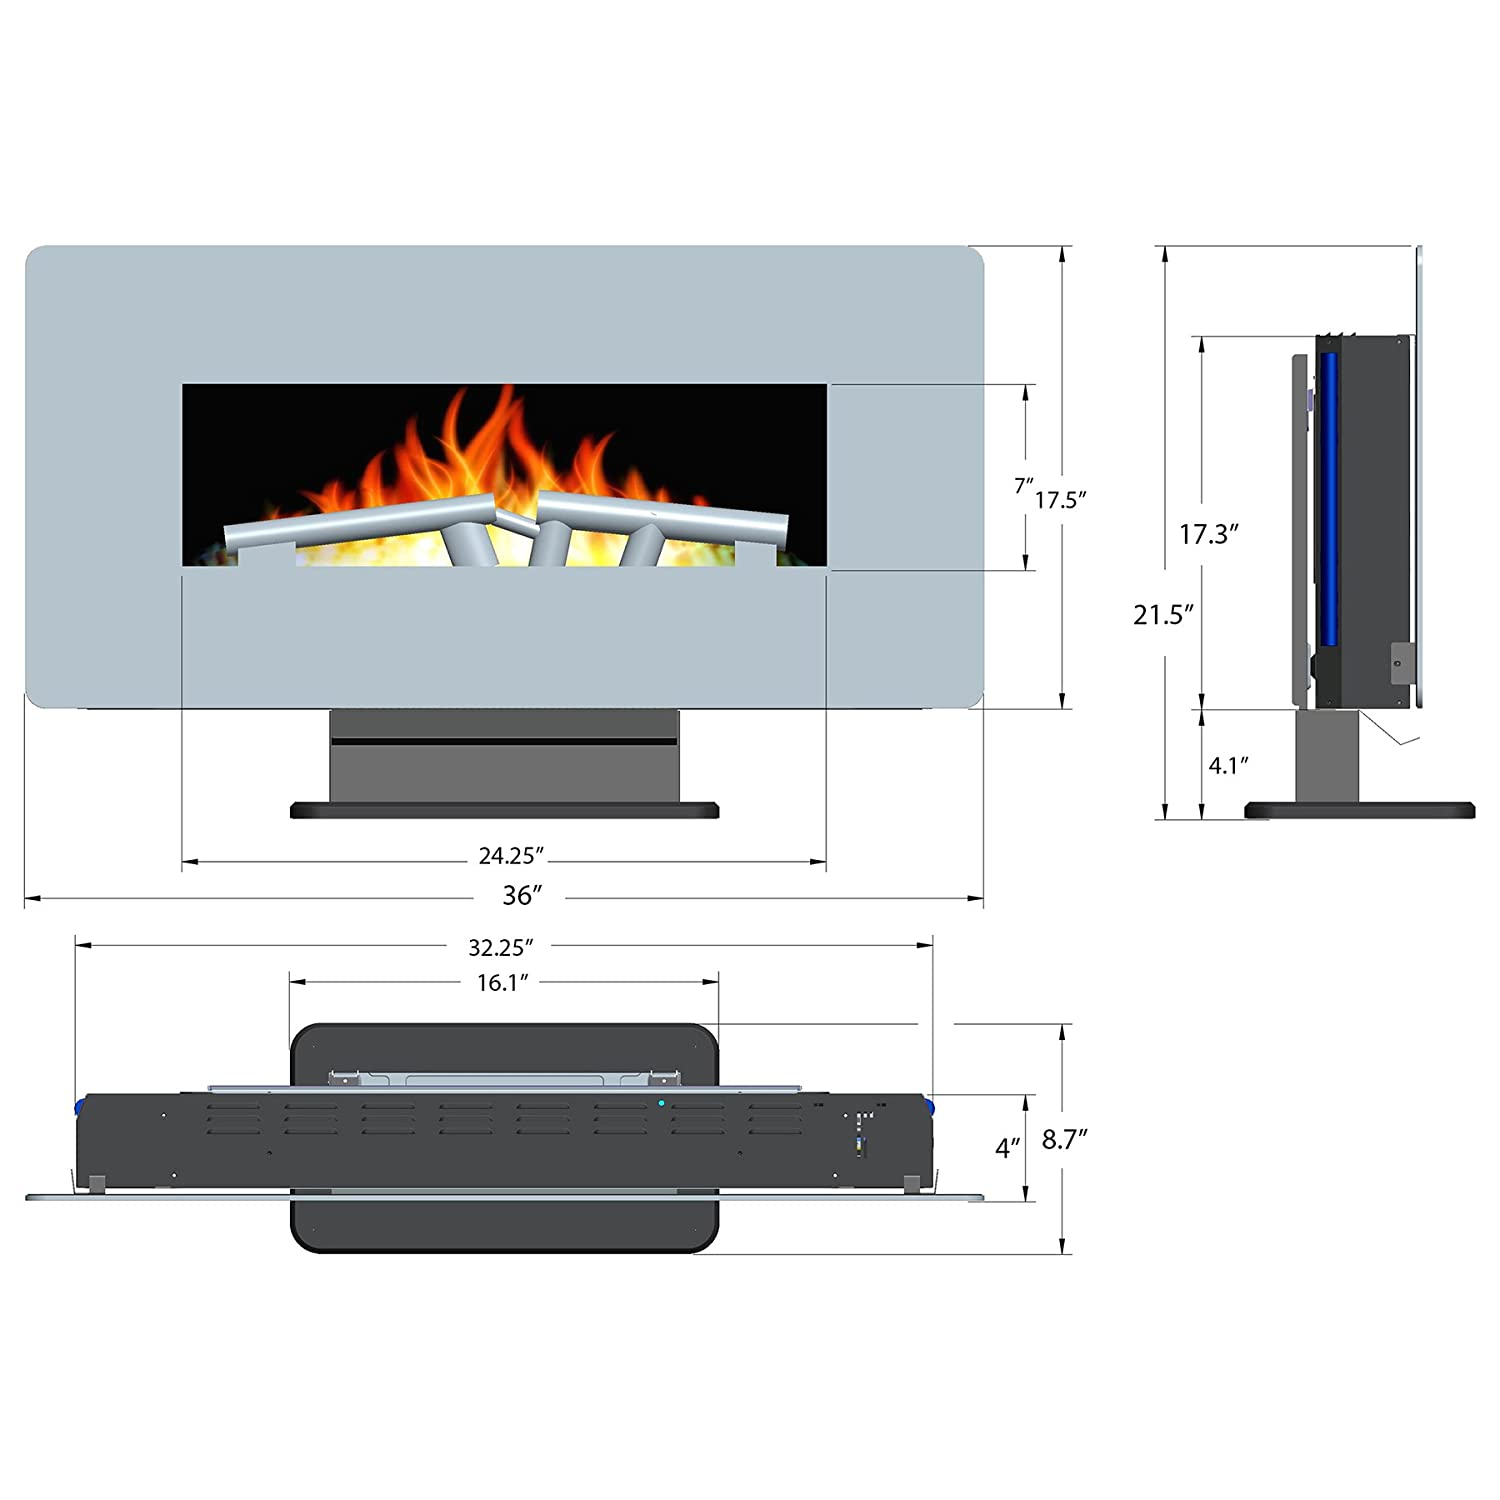 Amazon.com: 36-Inch Electric Wall Mount Fireplace Heater W/Remote ...